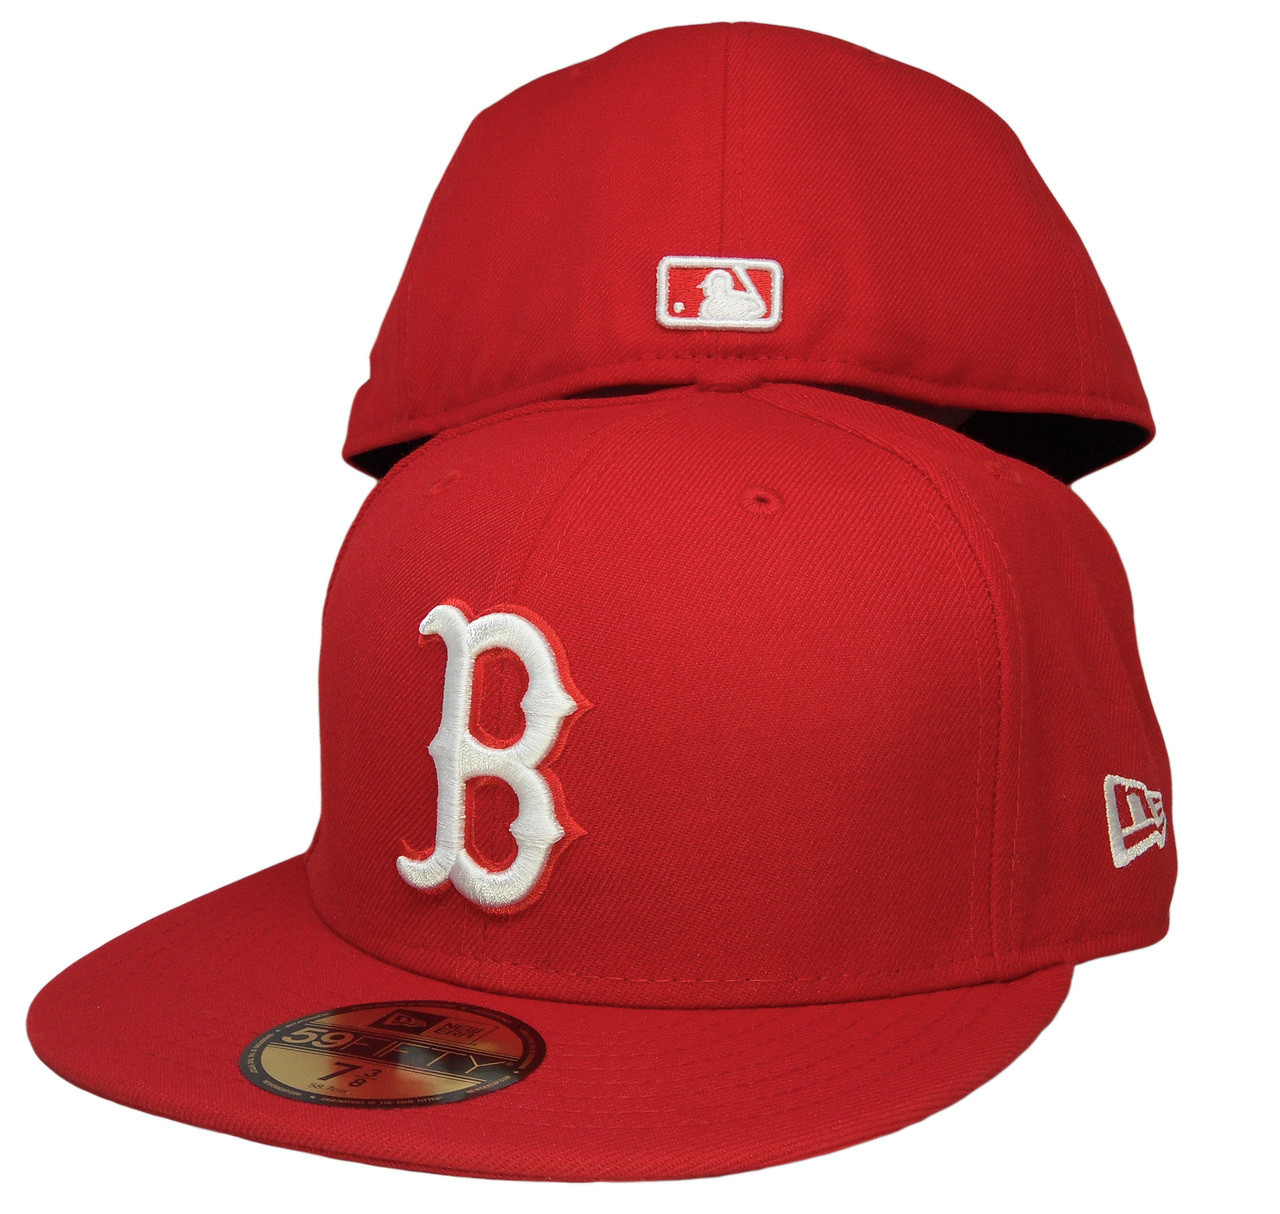 bf1597bf059 Boston Red Sox New Era 59Fifty Basic Fitted Hat - Red